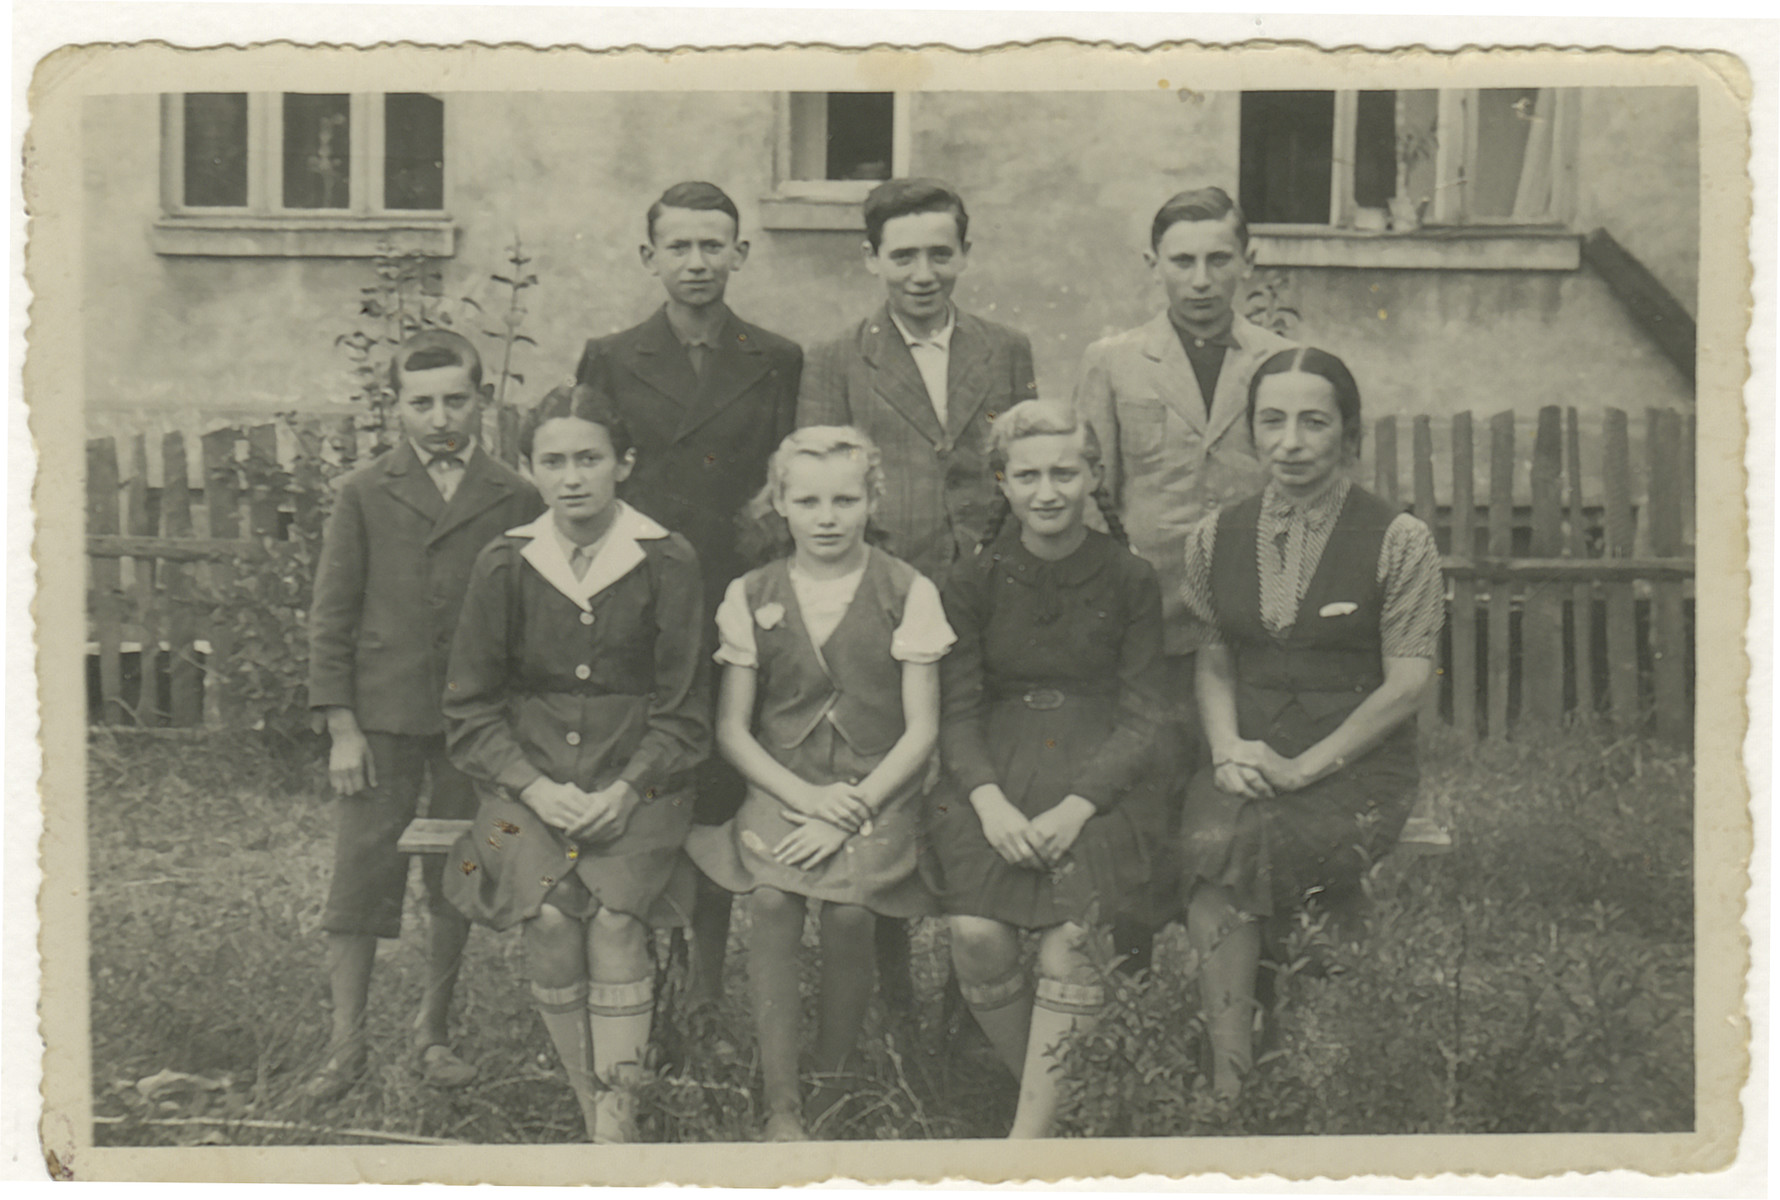 Group portrait of children in the clandestine school of the Zarki ghetto..    Among those pictured are standing lLeft to right Baum (the short boy standing far left), Marvin Zborowski, Steinbrecher, Bornstein (not related to the donor's family).  Bottom row seated left to right Varschwski, Granek, Sozia Naman (girl with braids) and the teacher Judicht.